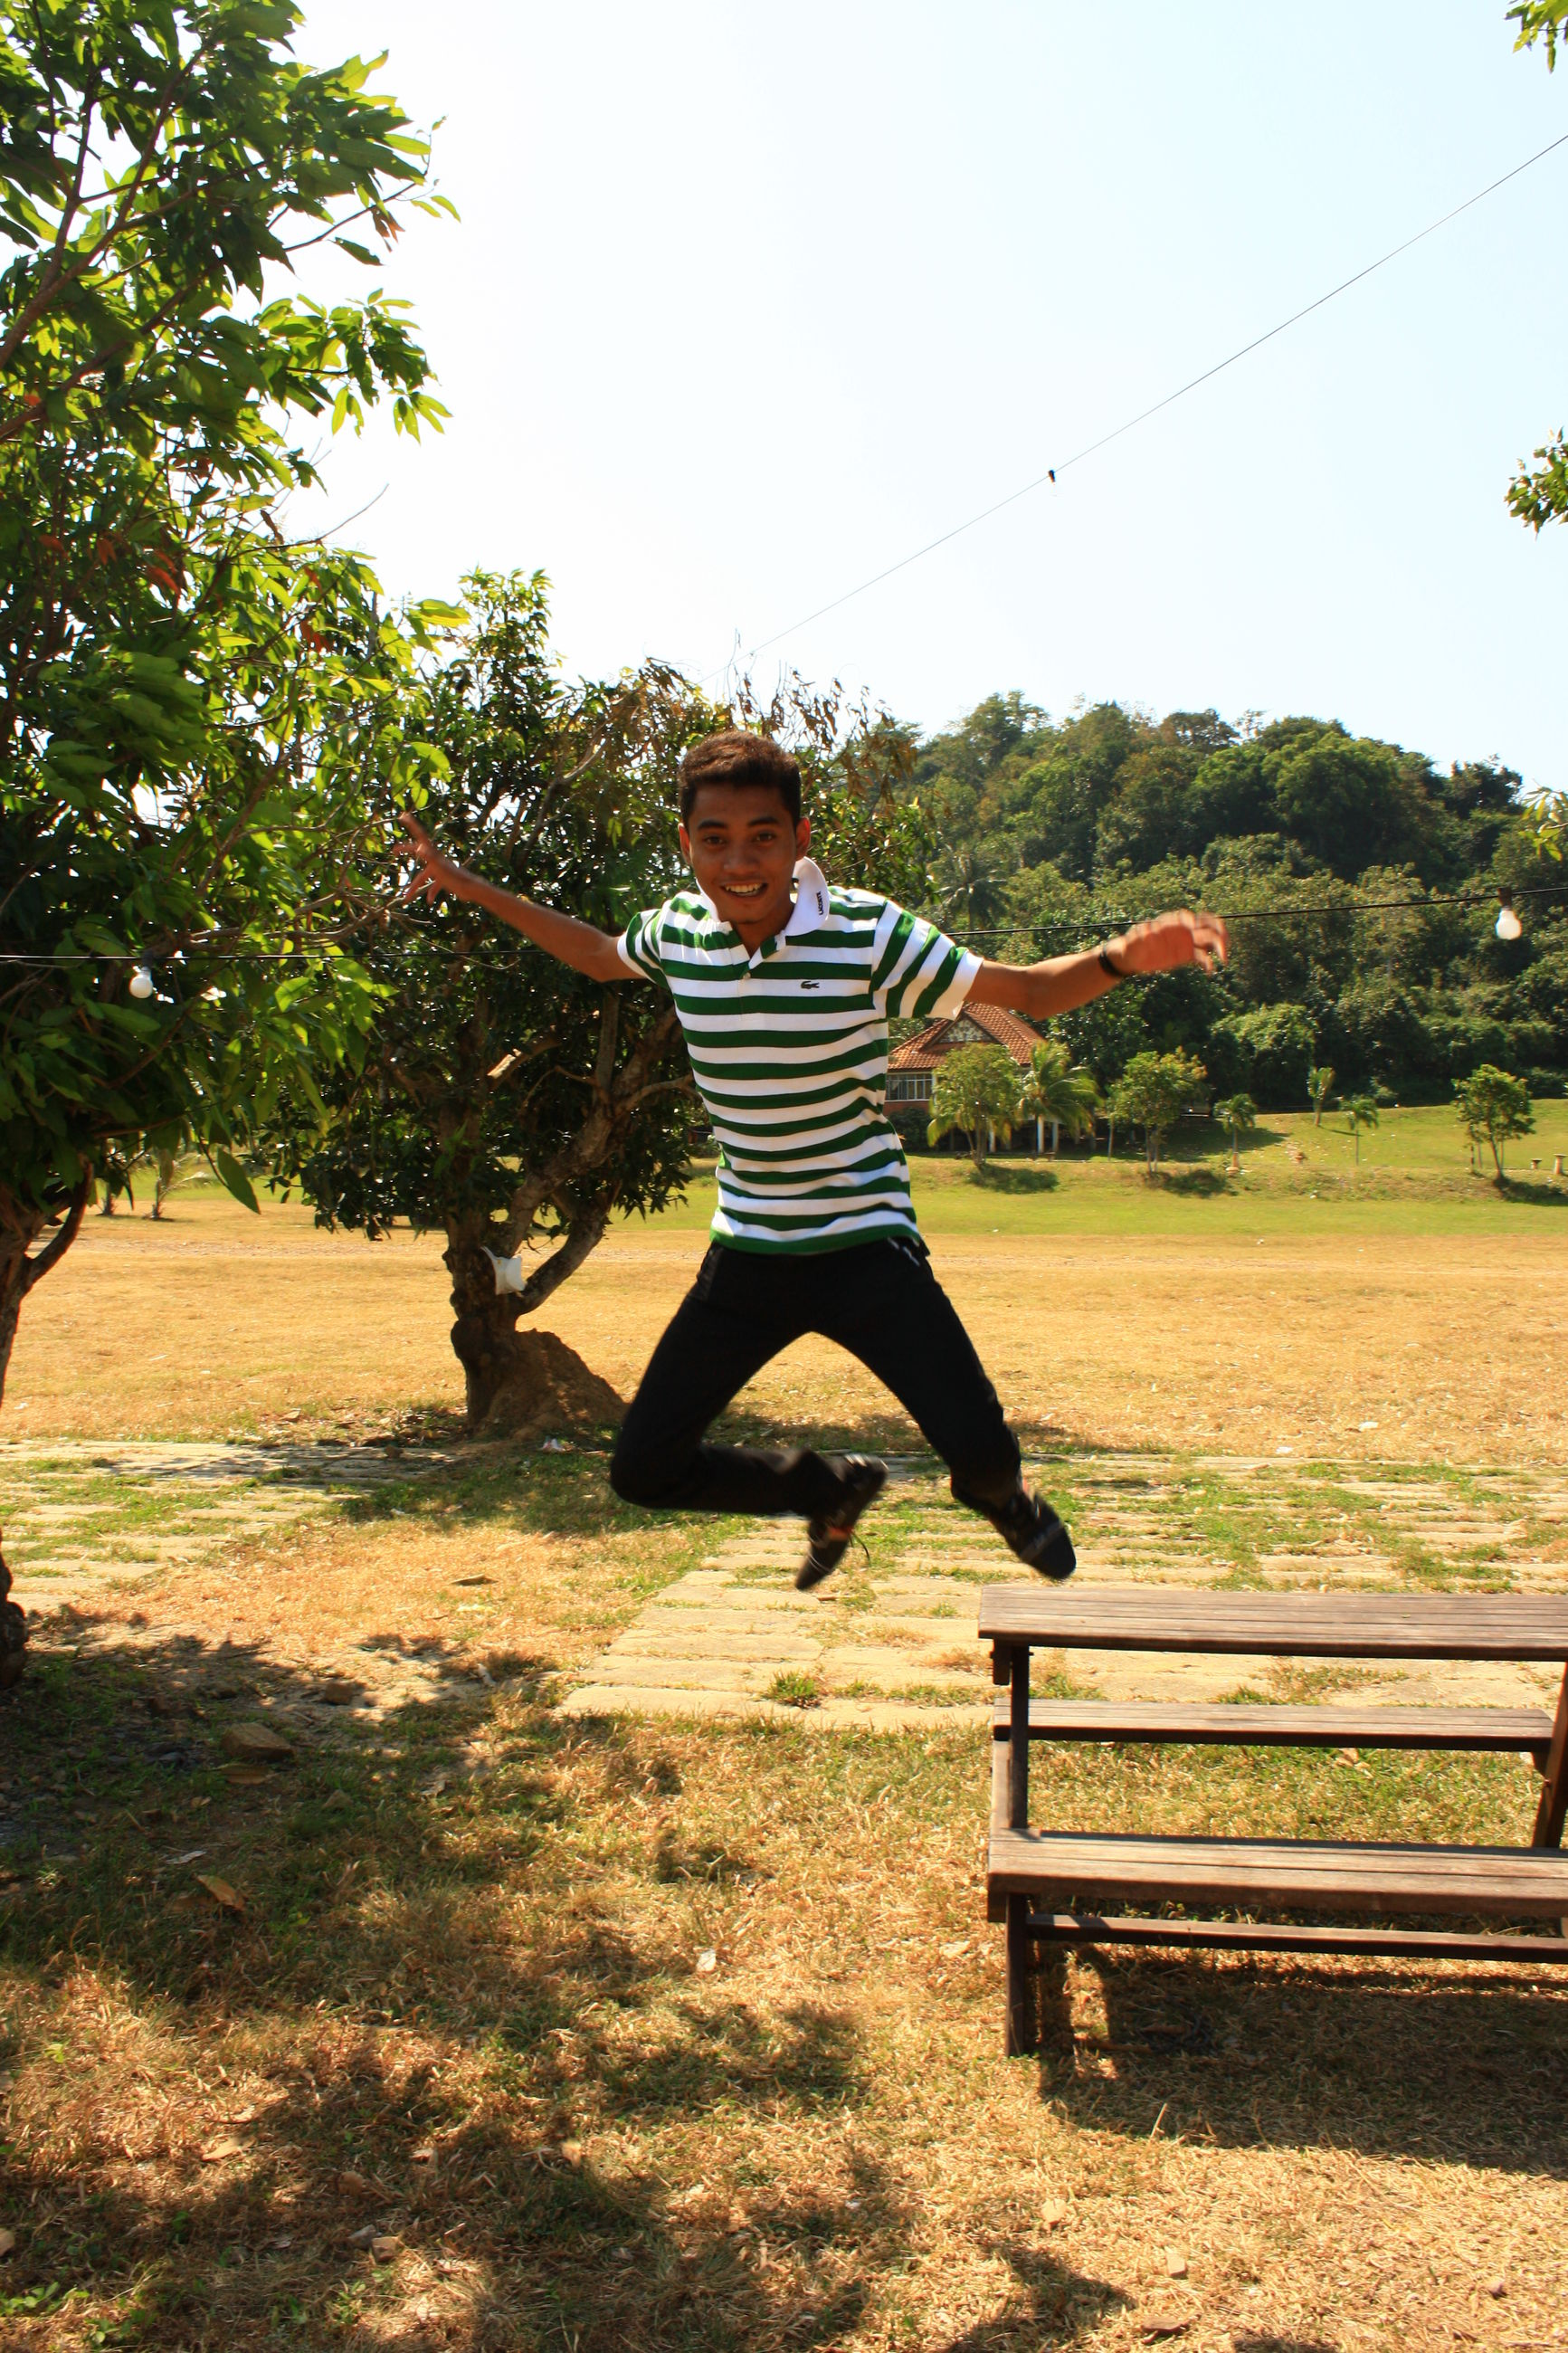 full length, tree, lifestyles, leisure activity, casual clothing, grass, park - man made space, young adult, enjoyment, mid-air, childhood, rear view, arms outstretched, carefree, person, field, fun